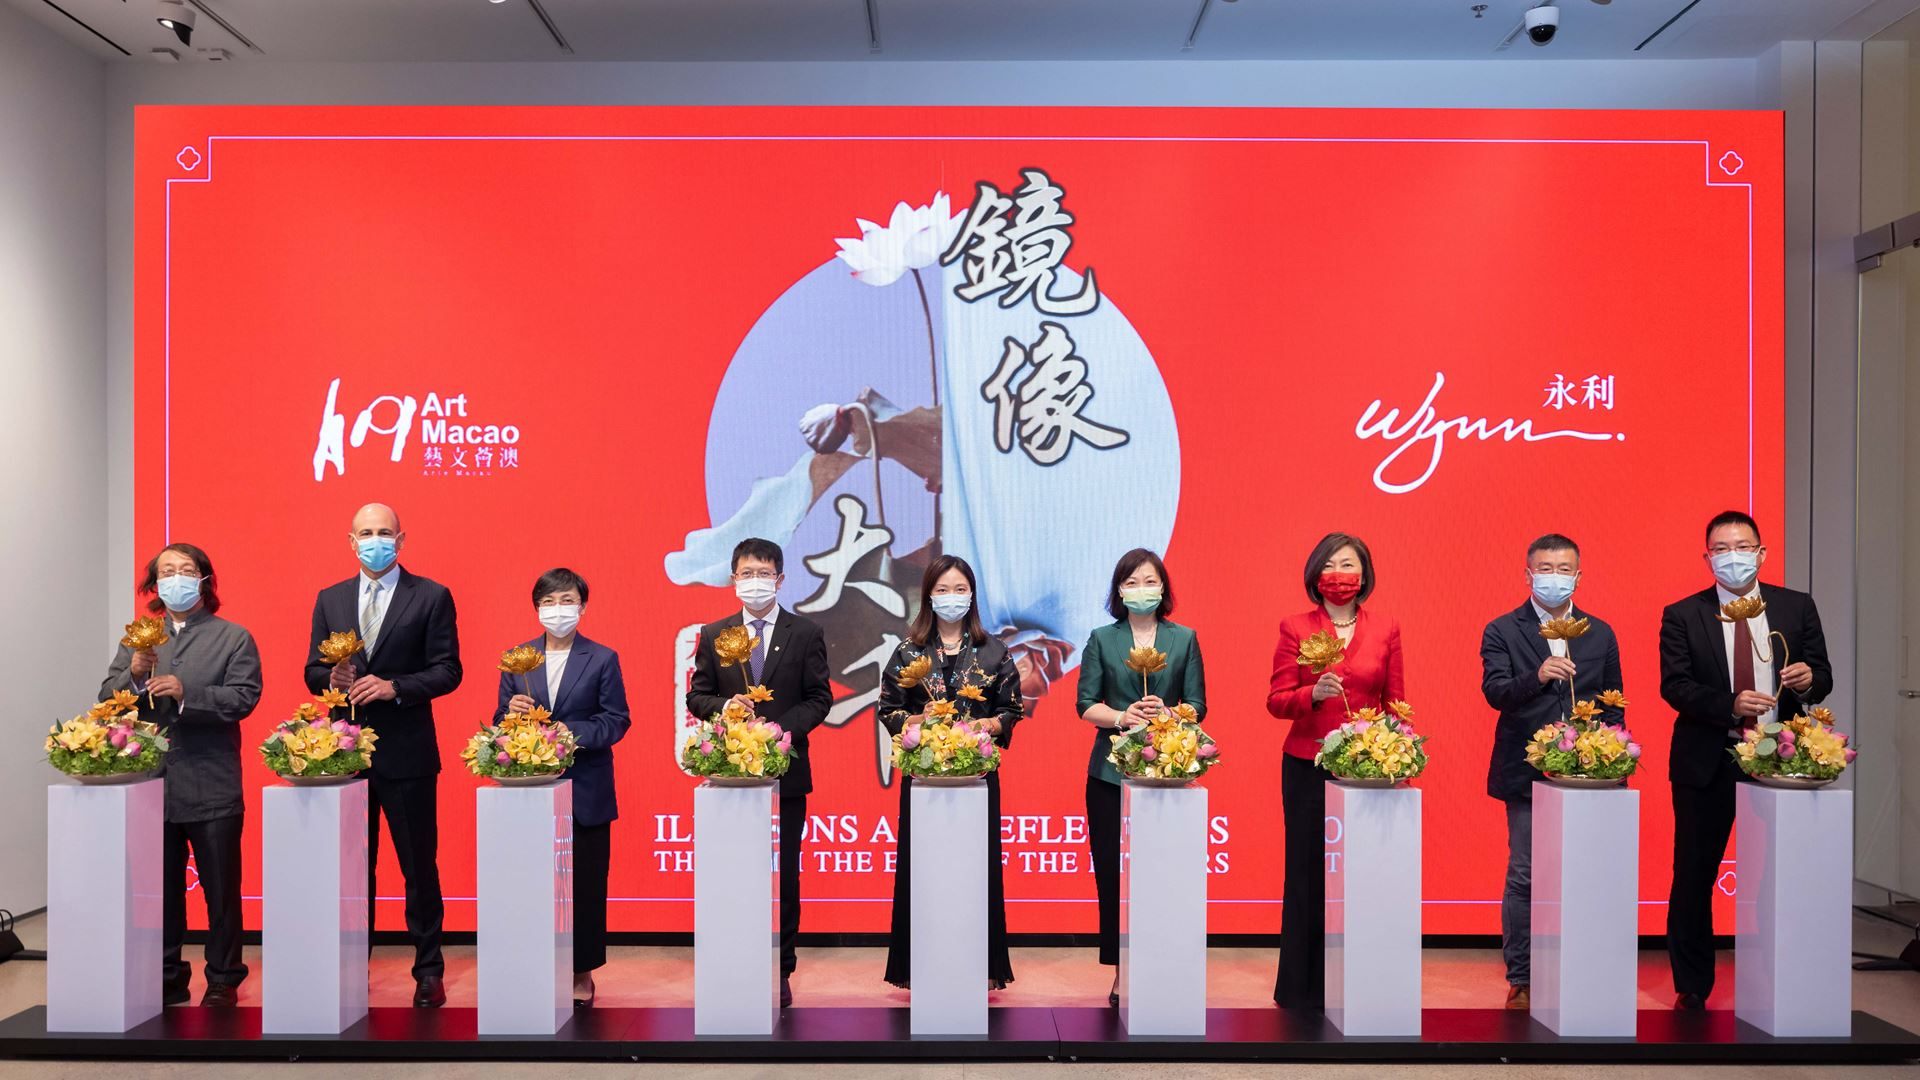 Wynn today officially launches an art exhibition entitled Illusions and Reflections – Through the Eyes of the Masters